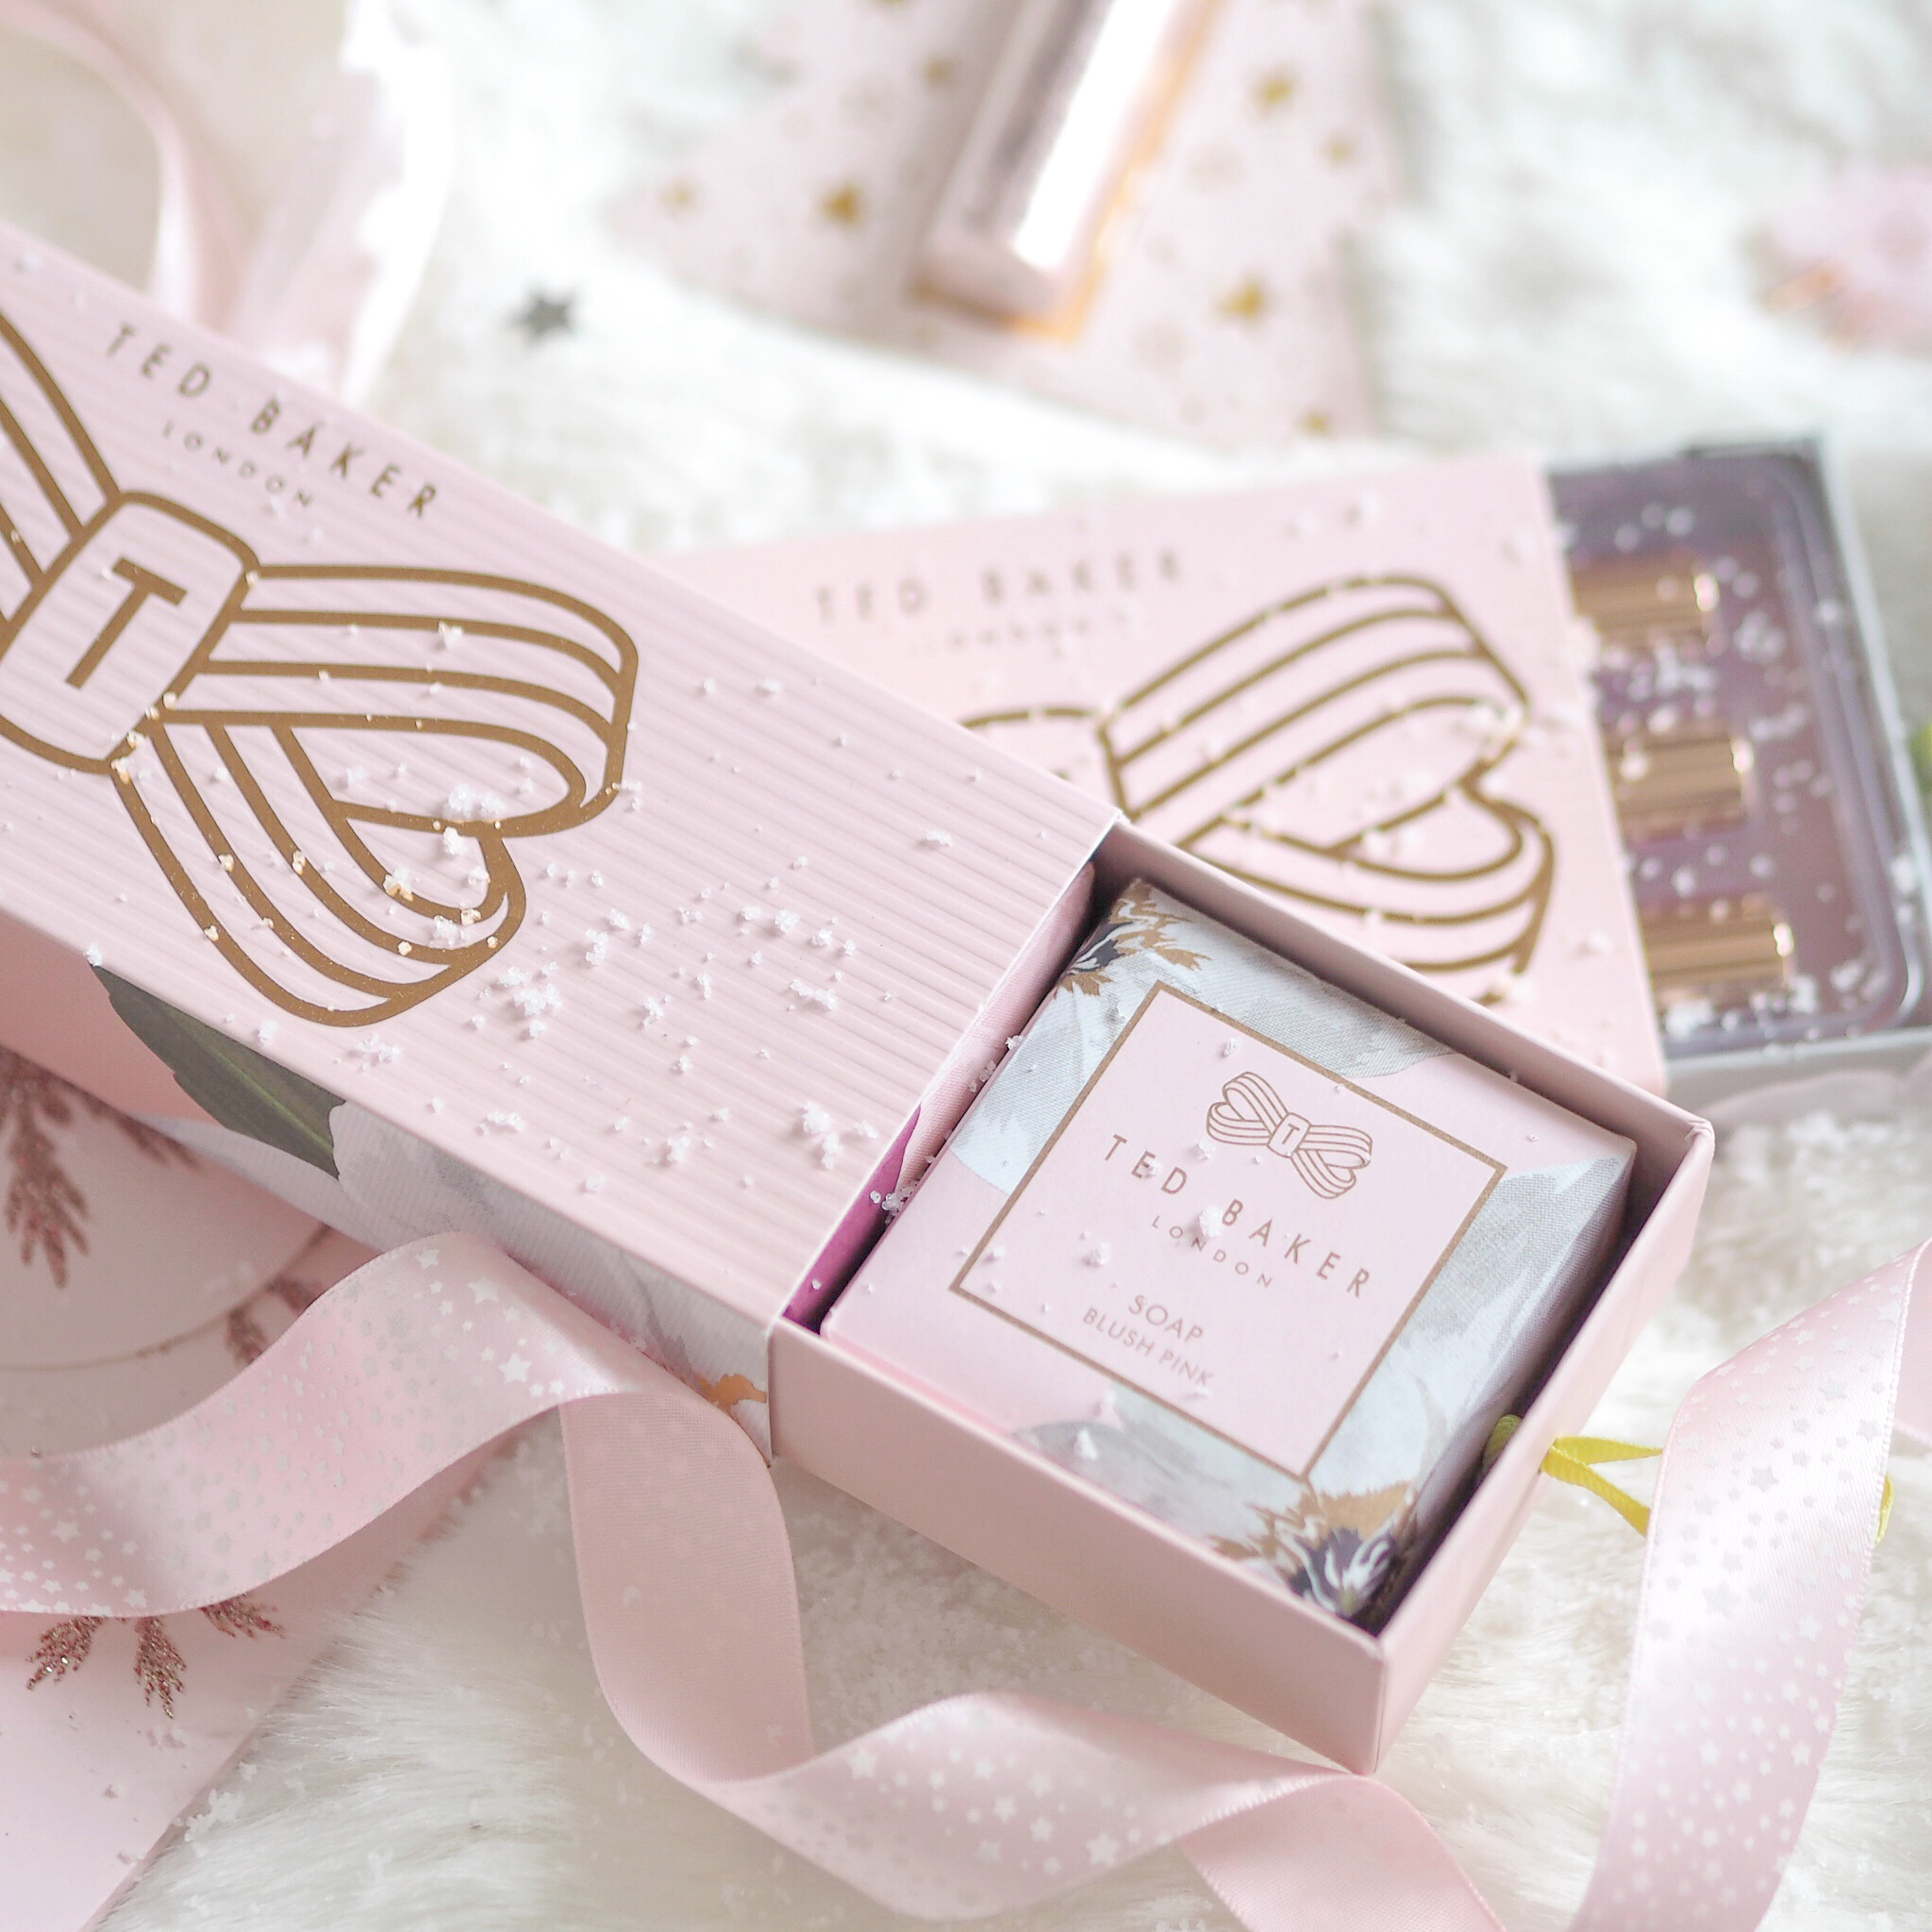 Seasons Treatings: Perfectly Pretty Christmas Gift Ideas For Her, Ted Baker Beauty